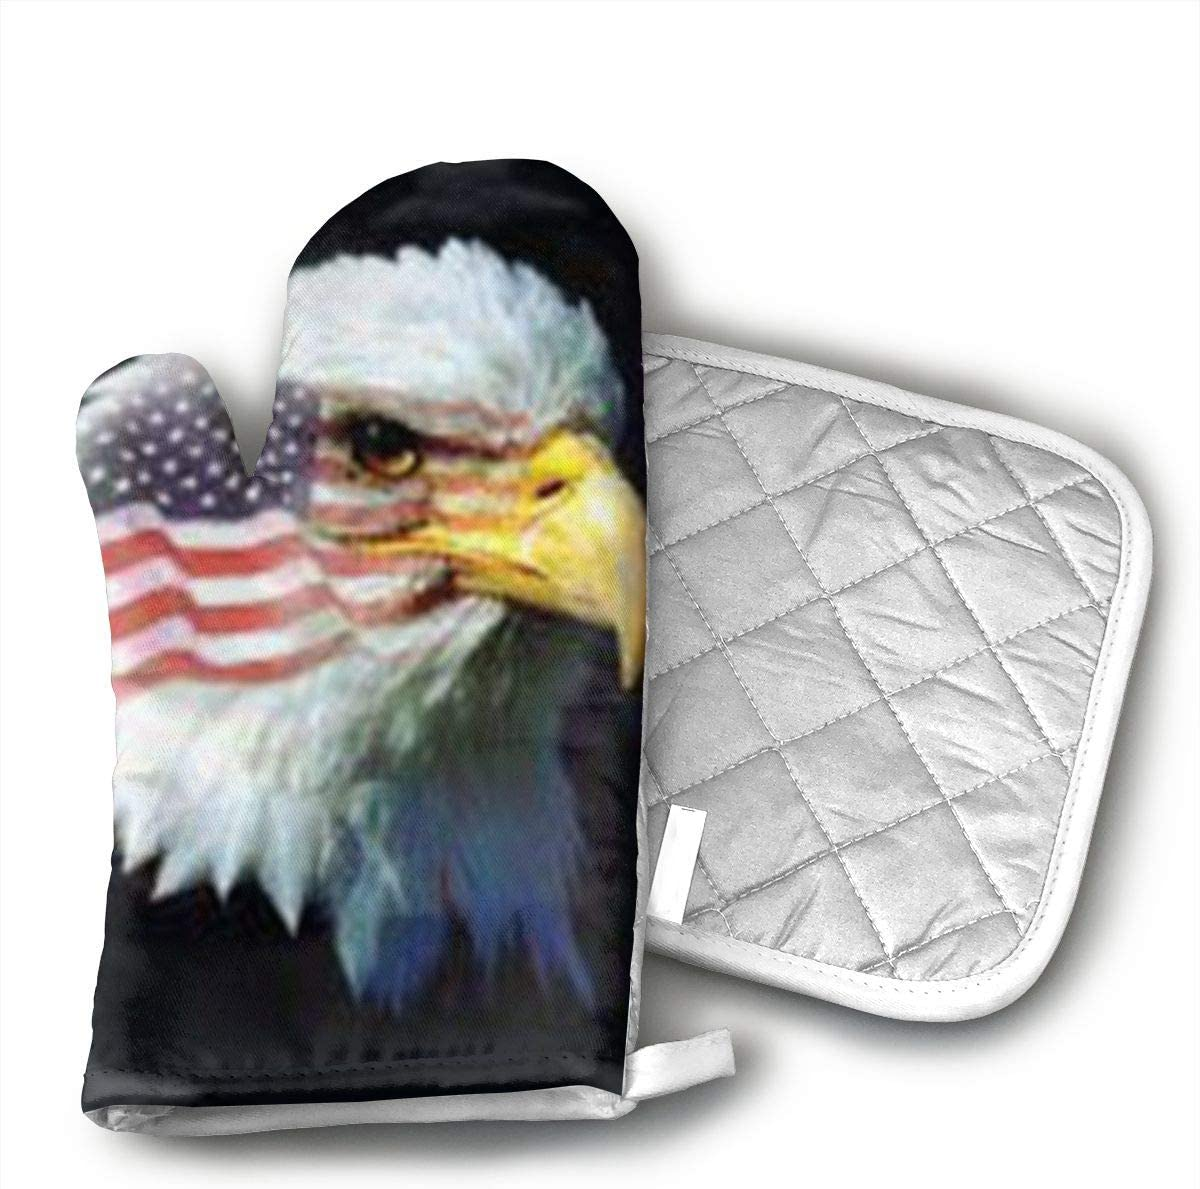 Patriotic Eagle Flag Oven Mitts,Heat Resistant Microwave BBQ Oven Insulation Cotton Gloves Baking Pot Mitts Kitchen Cooking